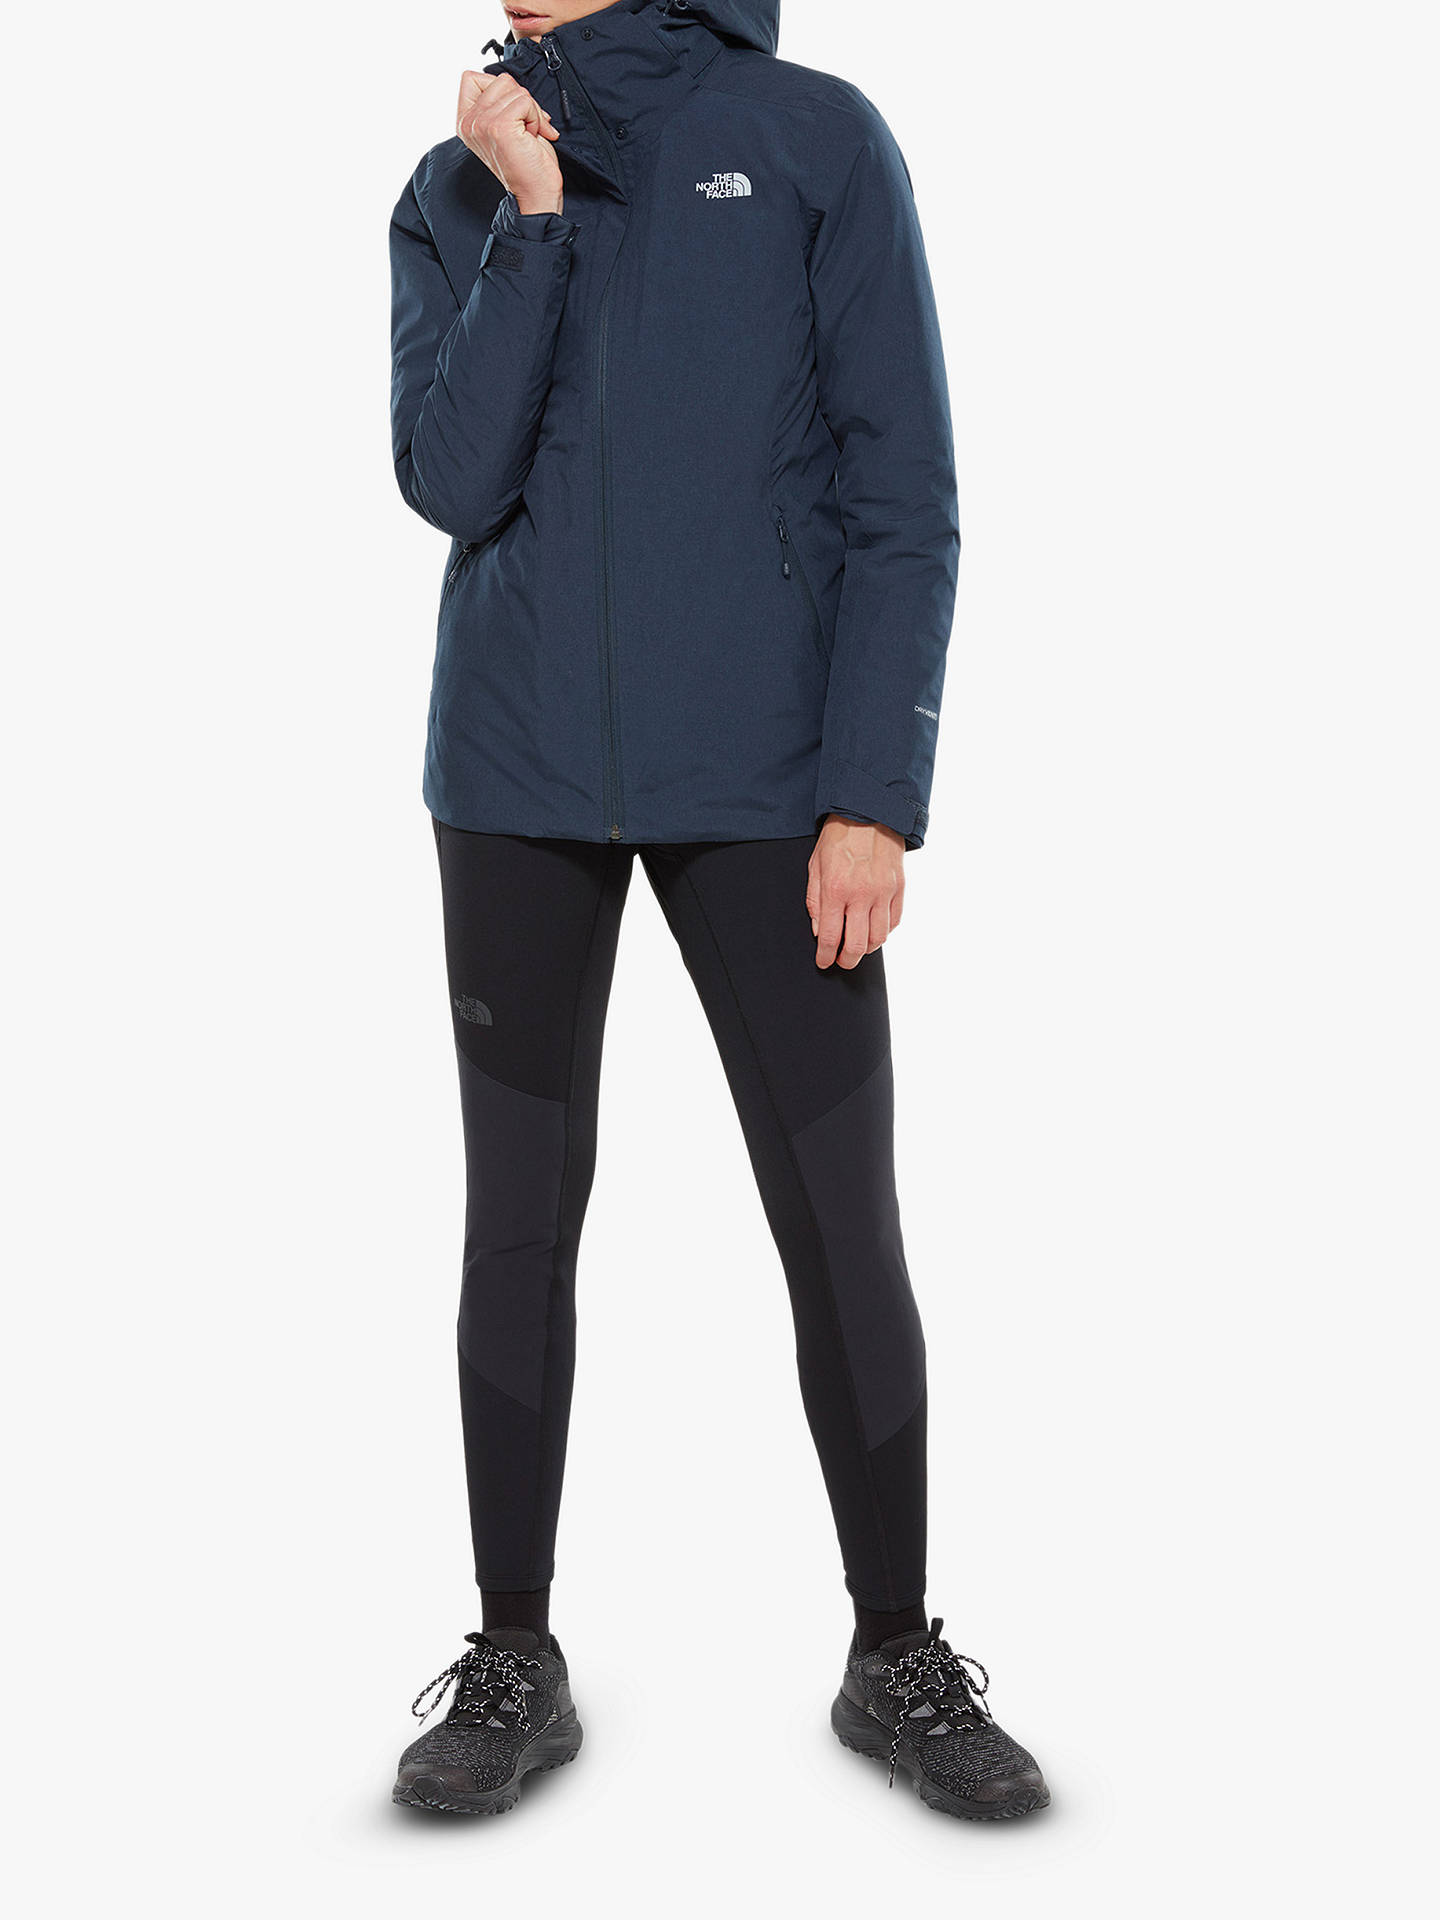 Buy The North Face Inlux Triclimate Women's Waterproof Jacket, Urban Navy, M Online at johnlewis.com